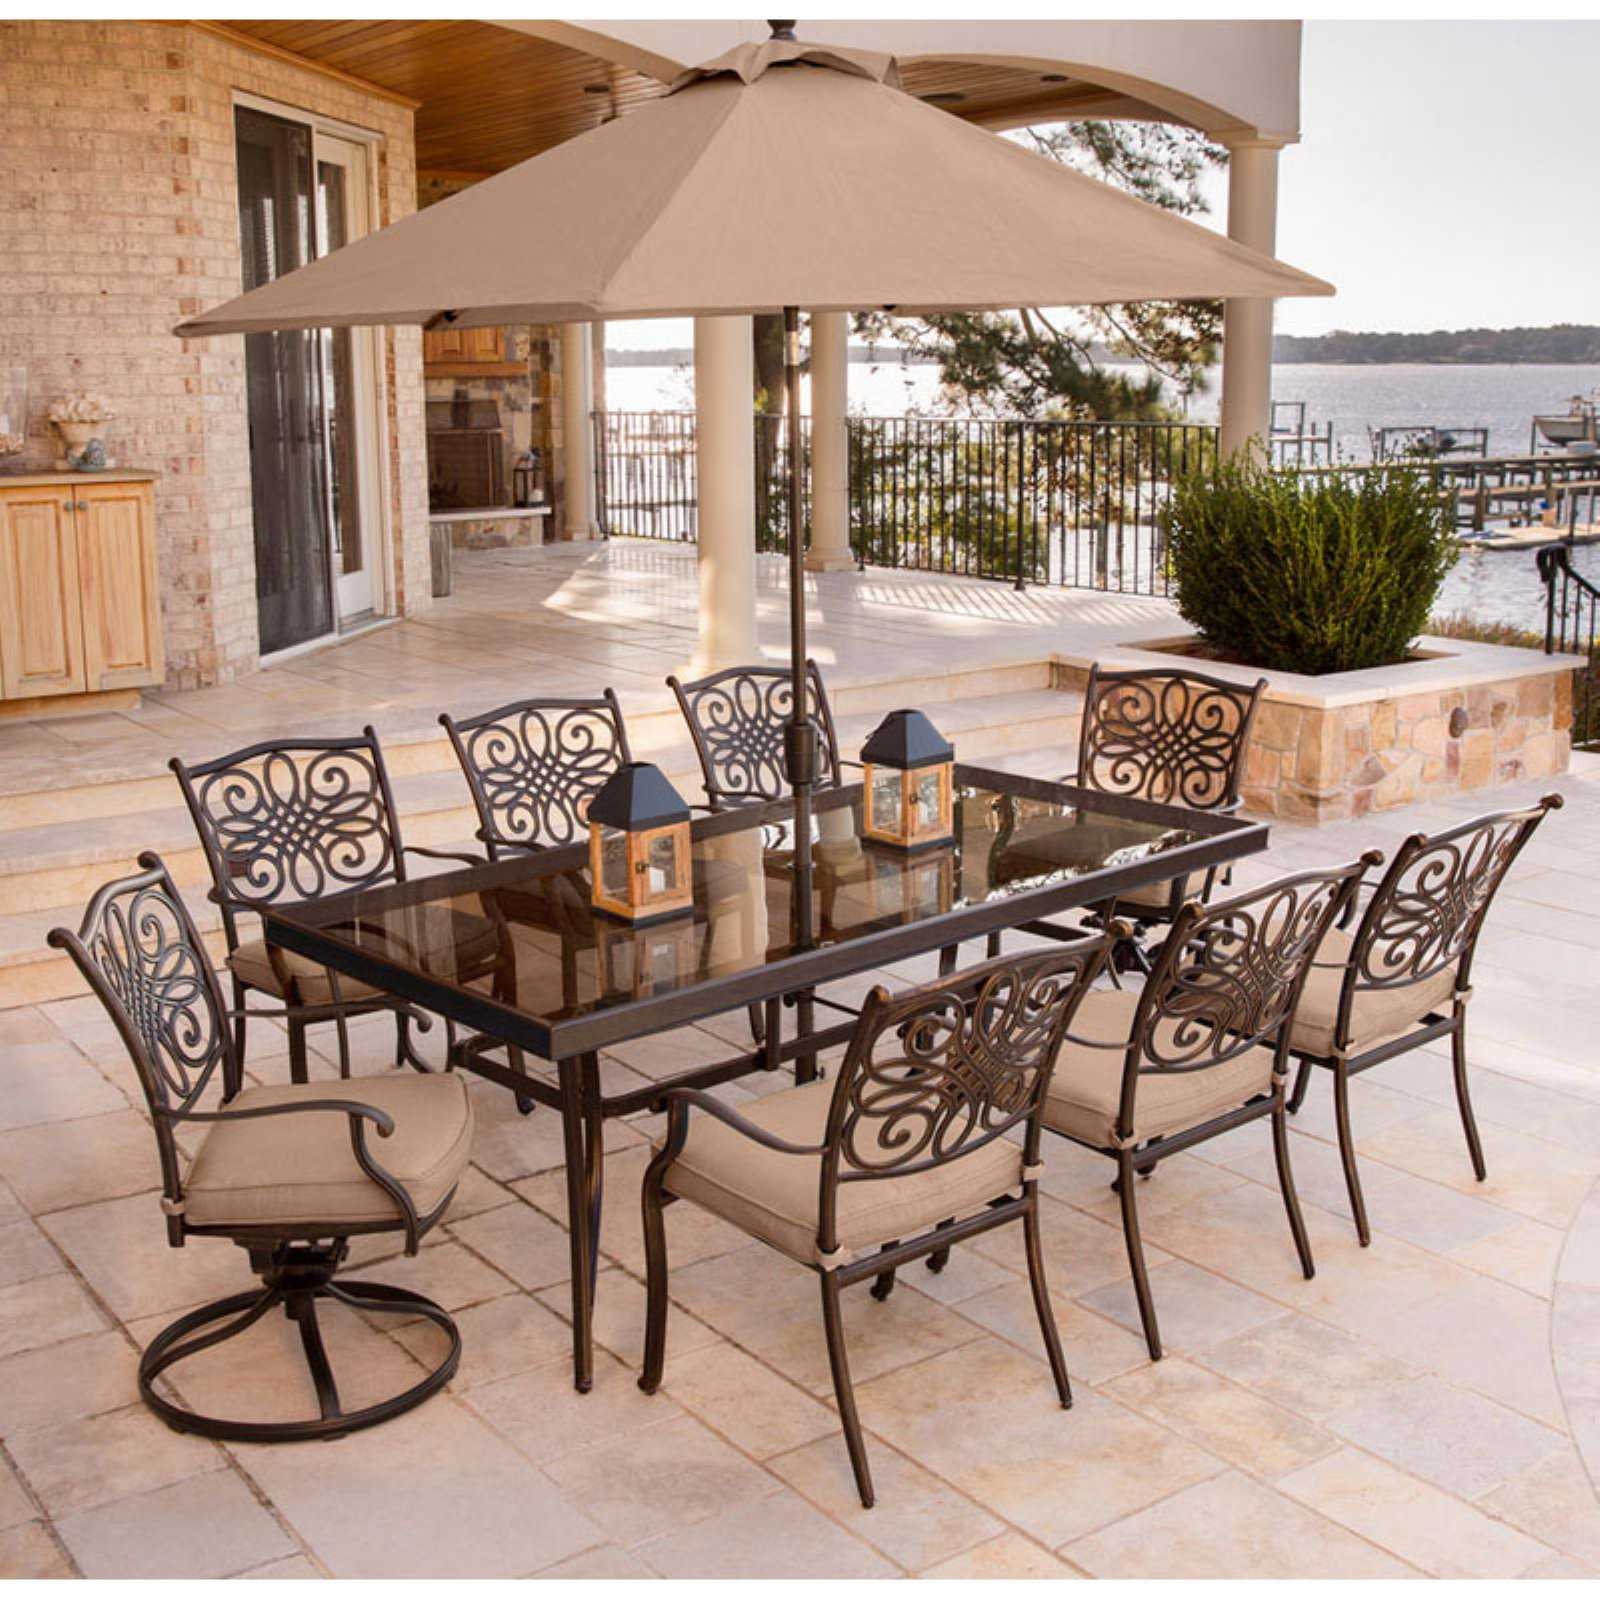 """Hanover Outdoor Traditions 9-Piece Dining Set with 42"""" x 84"""" Glass-Top Table, 6 Stationary Chairs, 2 Swivel Rockers and Umbrella with Stand, Natural Oat"""